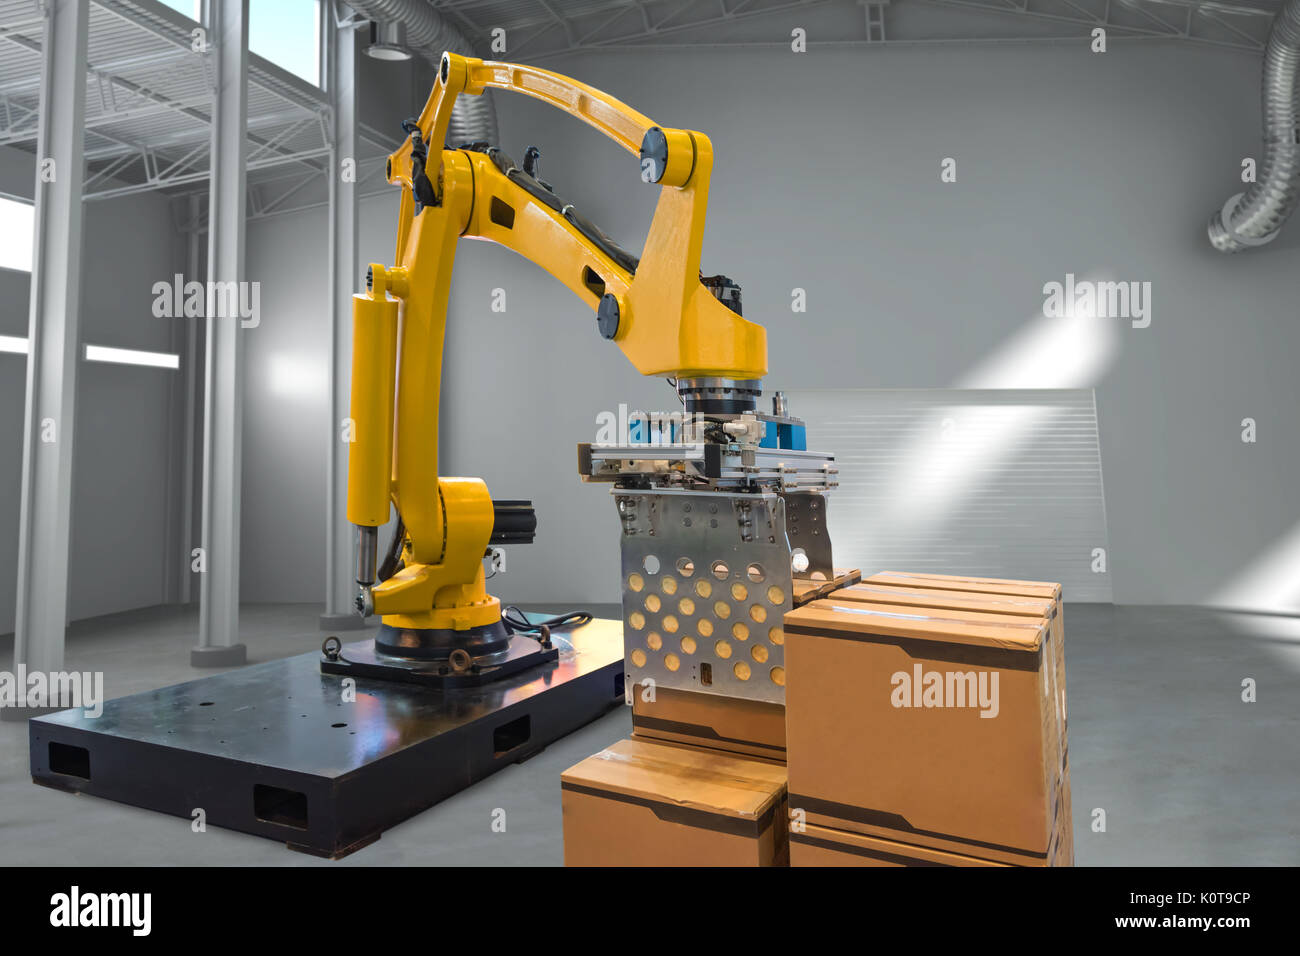 Smart logistic , industry 4.0 concept. Automation shipping robotics stow robot arm machine in smart warehouse factory. - Stock Image